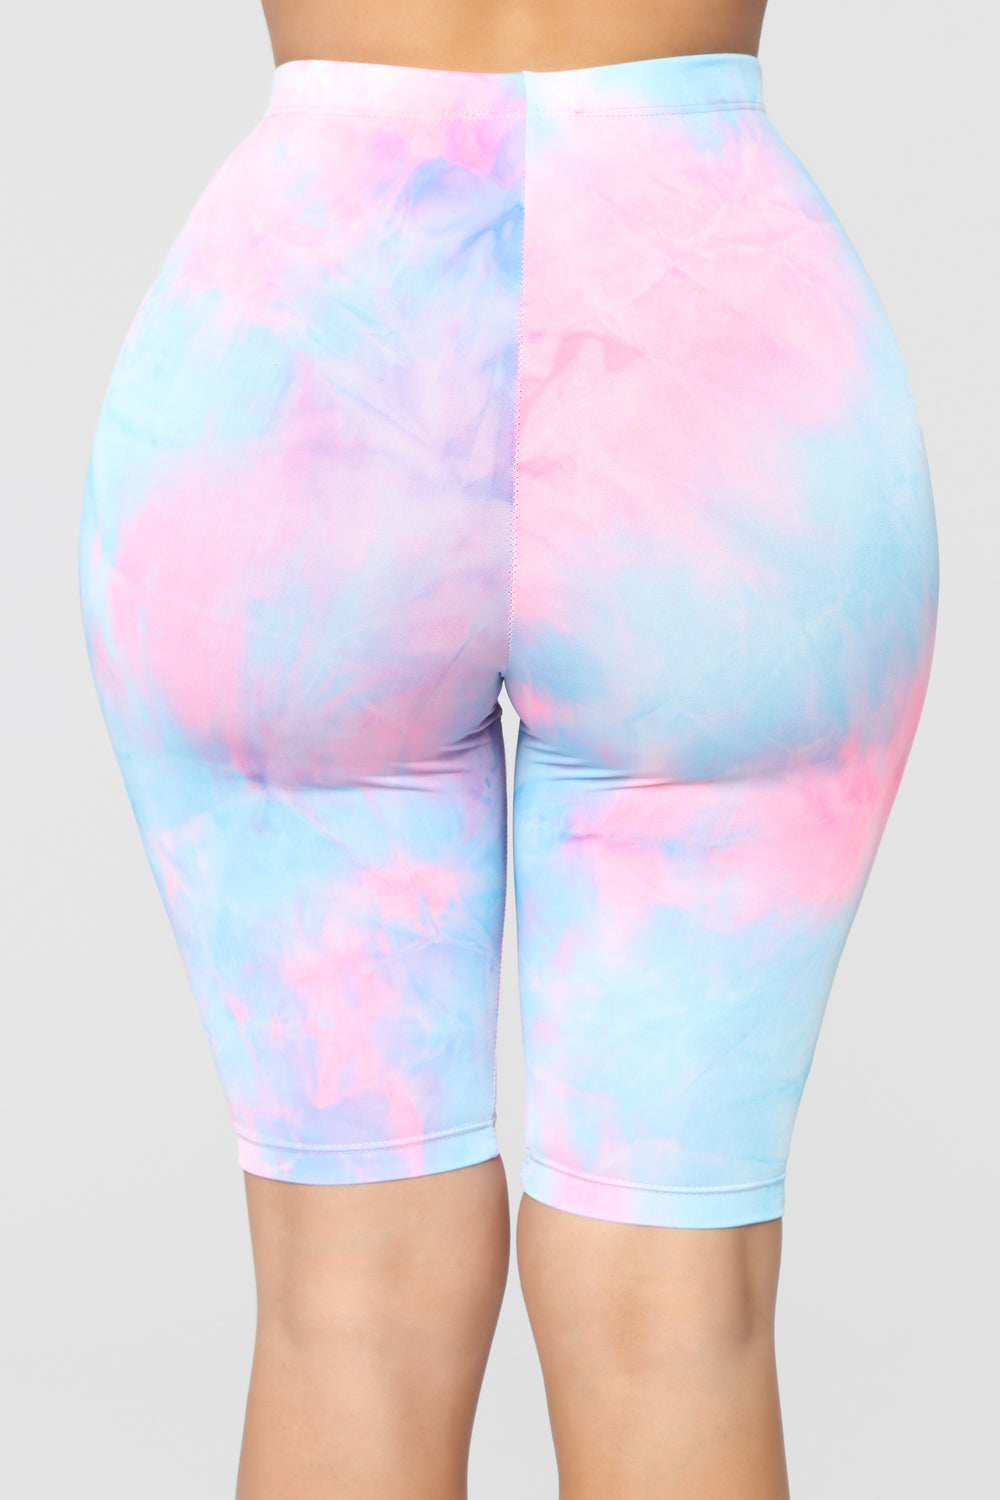 Tie My Dye Biker Shorts - Pink/Blue